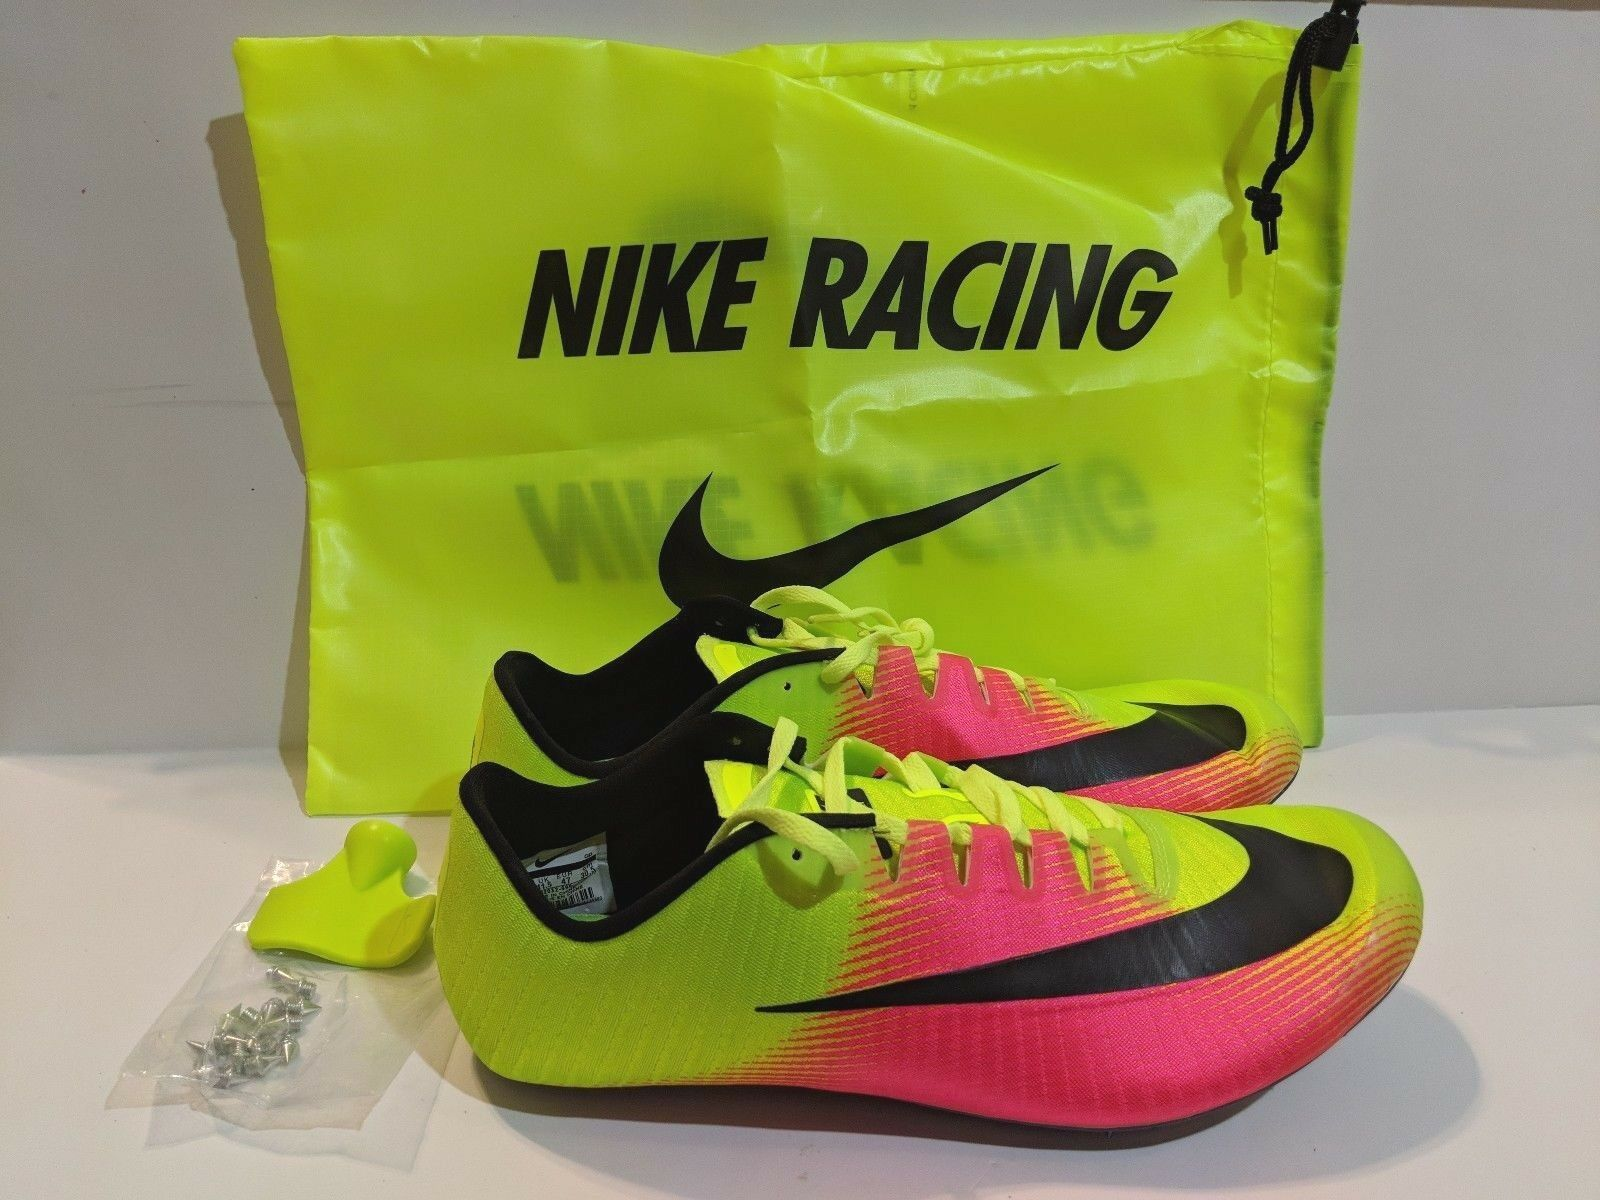 NEW Nike Zoom Ja Fly 3 Track & Field Spikes Rio Volt Pink 882032-999 Size 12.5